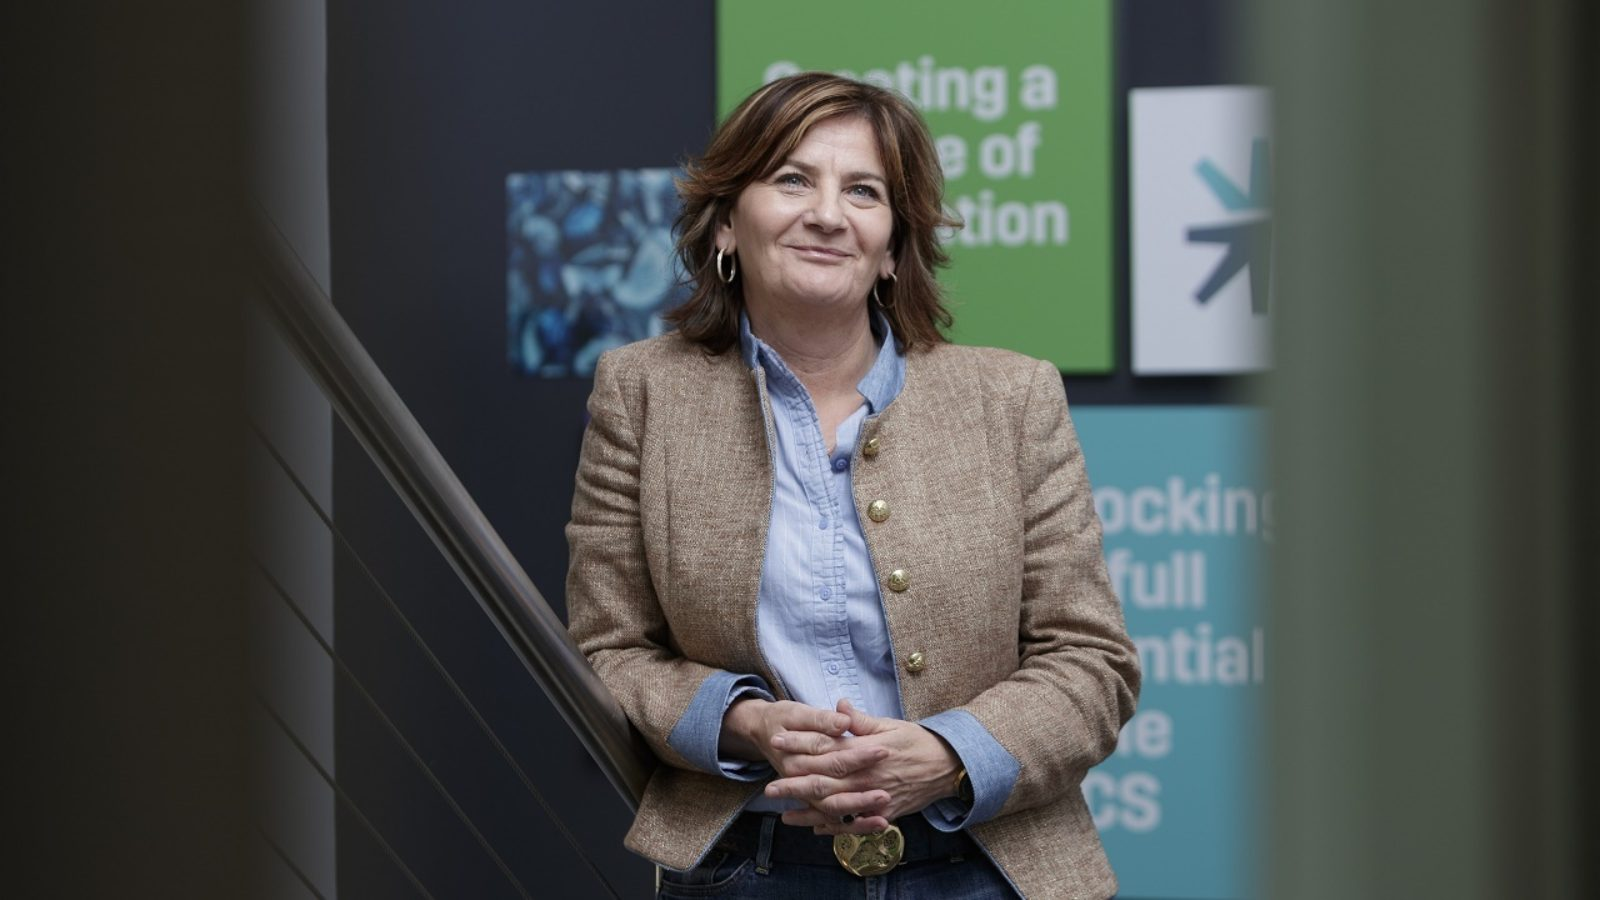 Colette Cohen OBE, chief executive officer, Oil & Gas Technology Centre